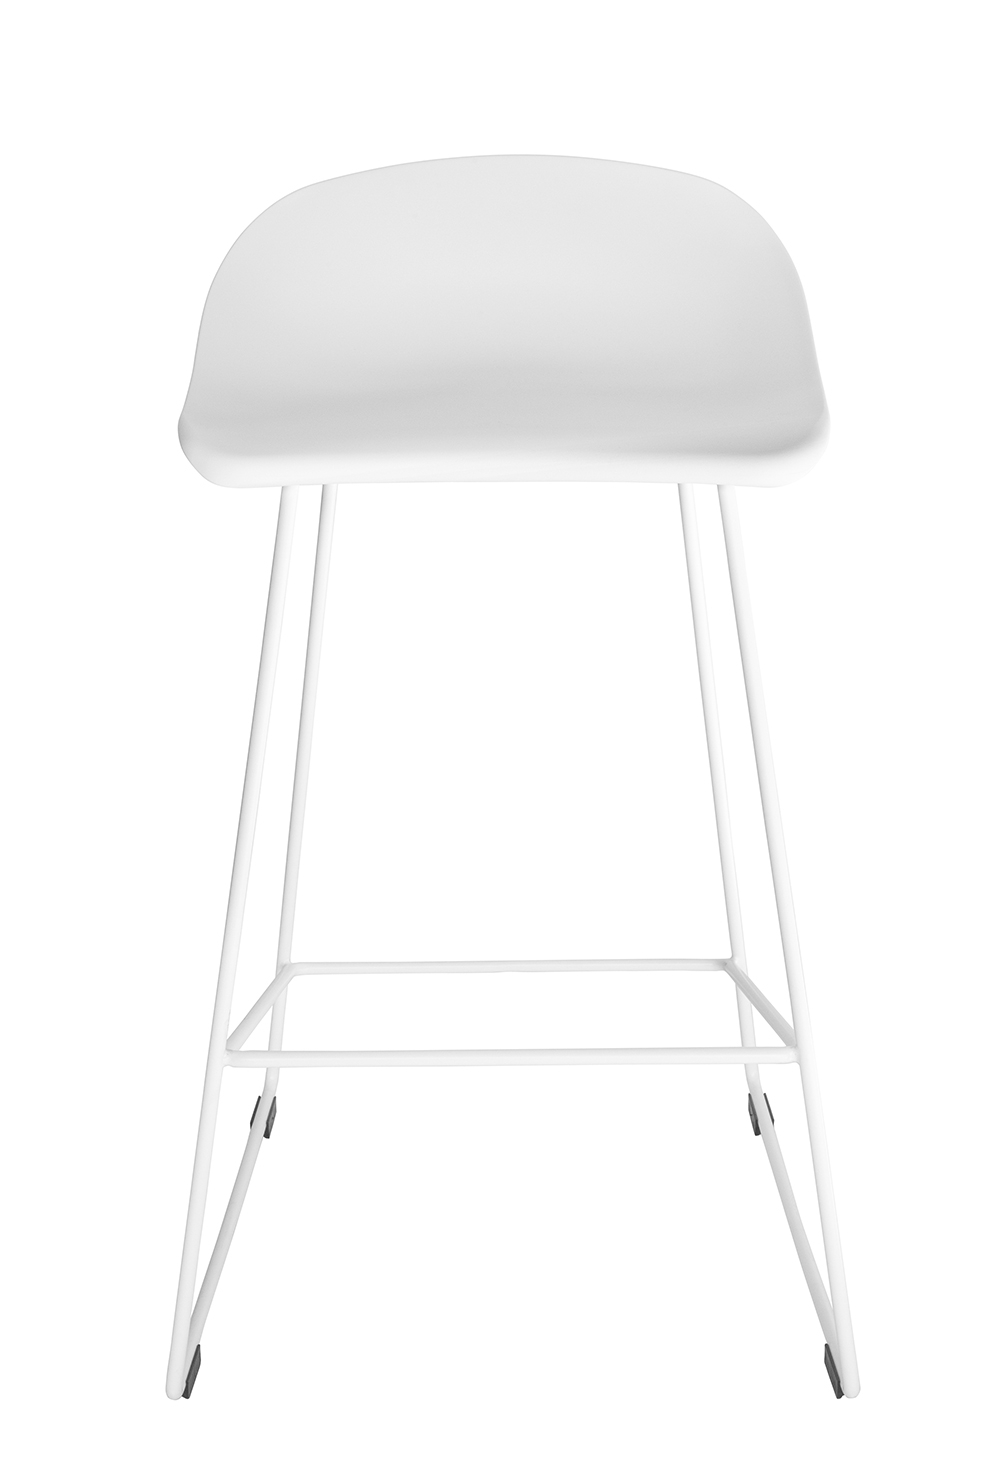 Replica Hee Welling Stool | White